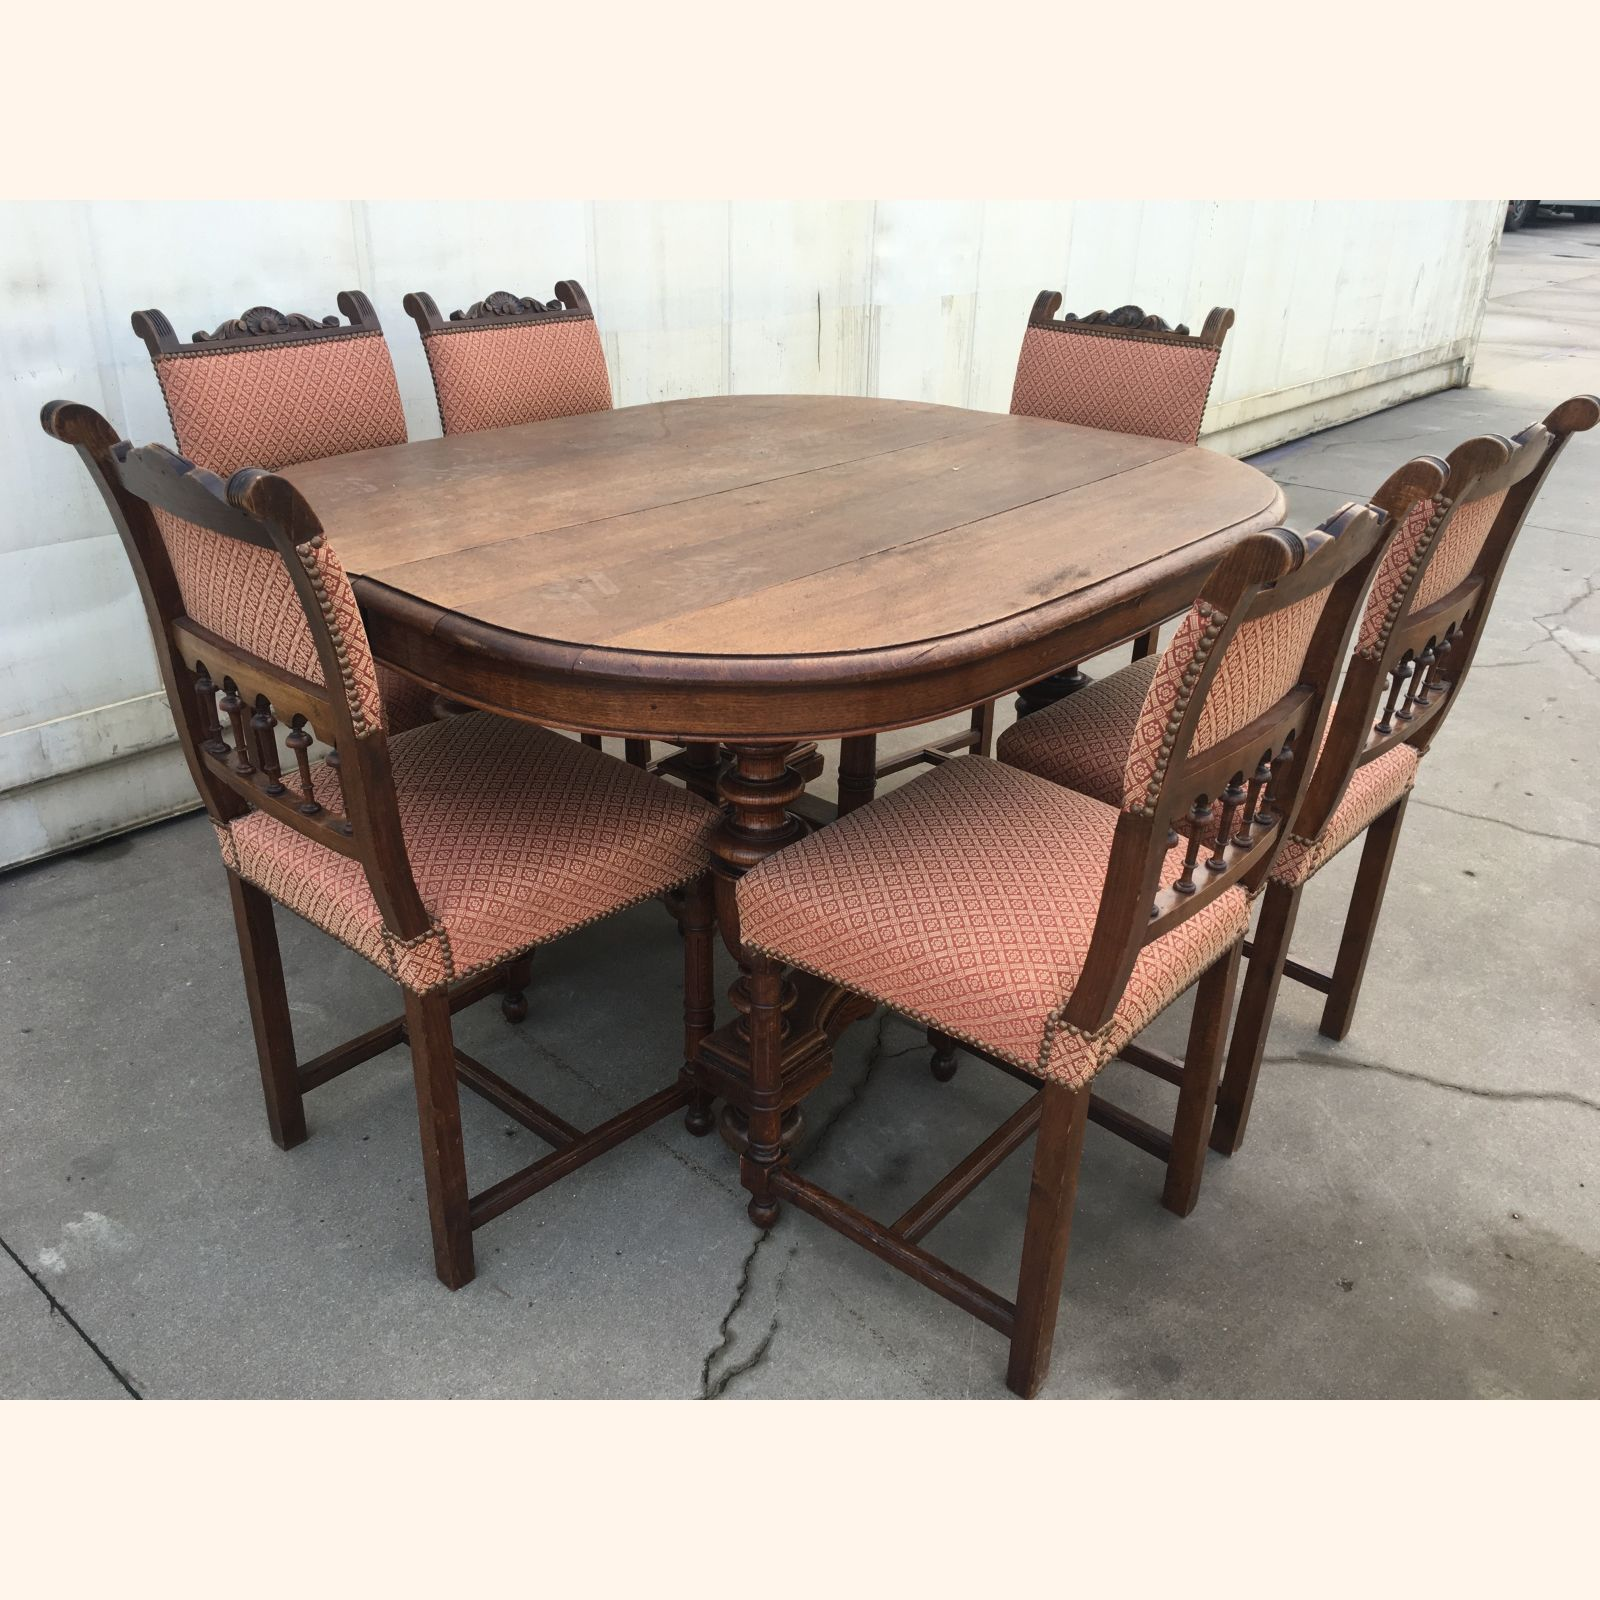 antique dining table and chairs a exports